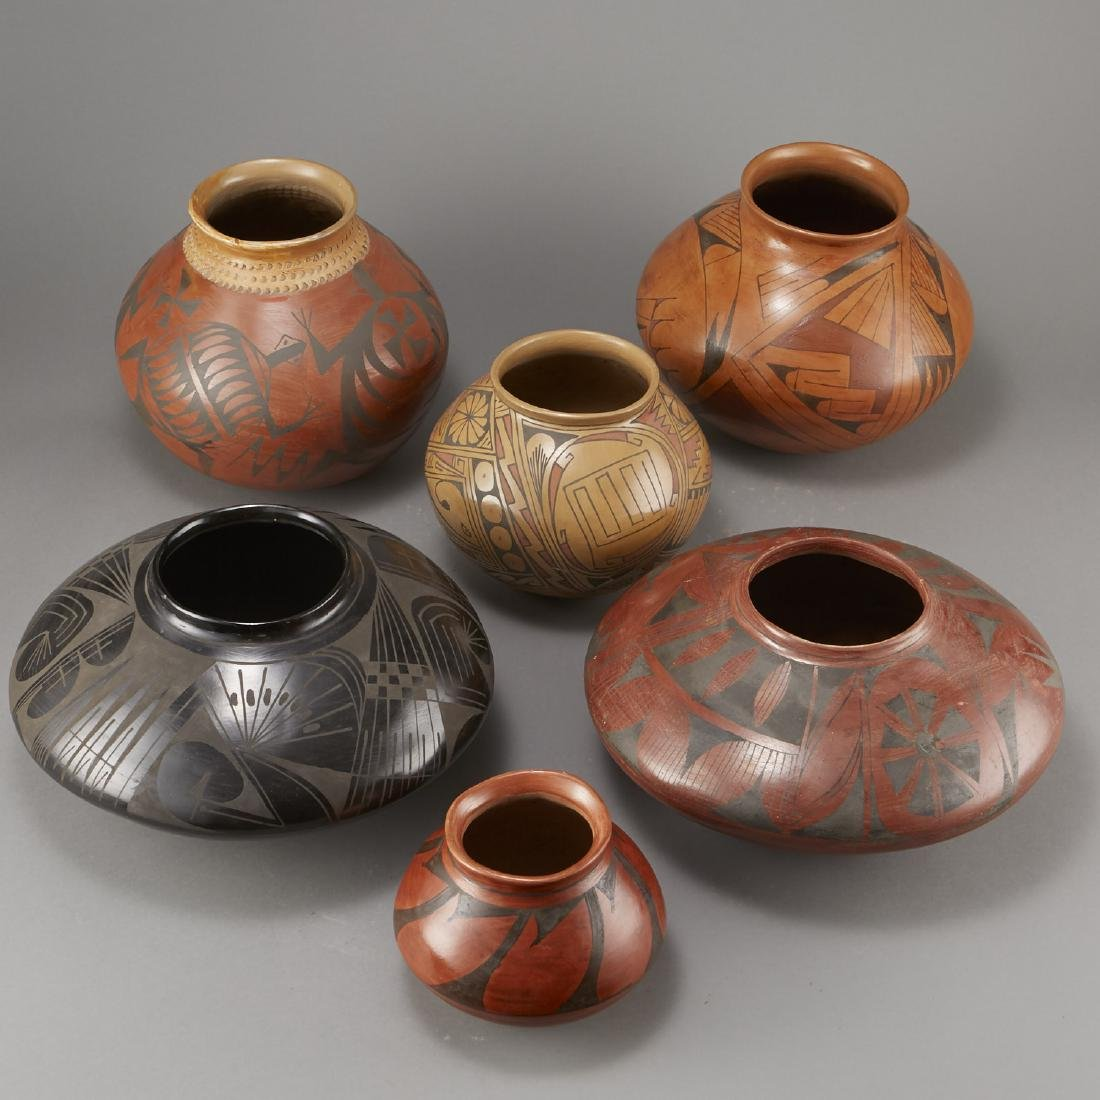 6 Pieces of Polychrome Pottery - 2